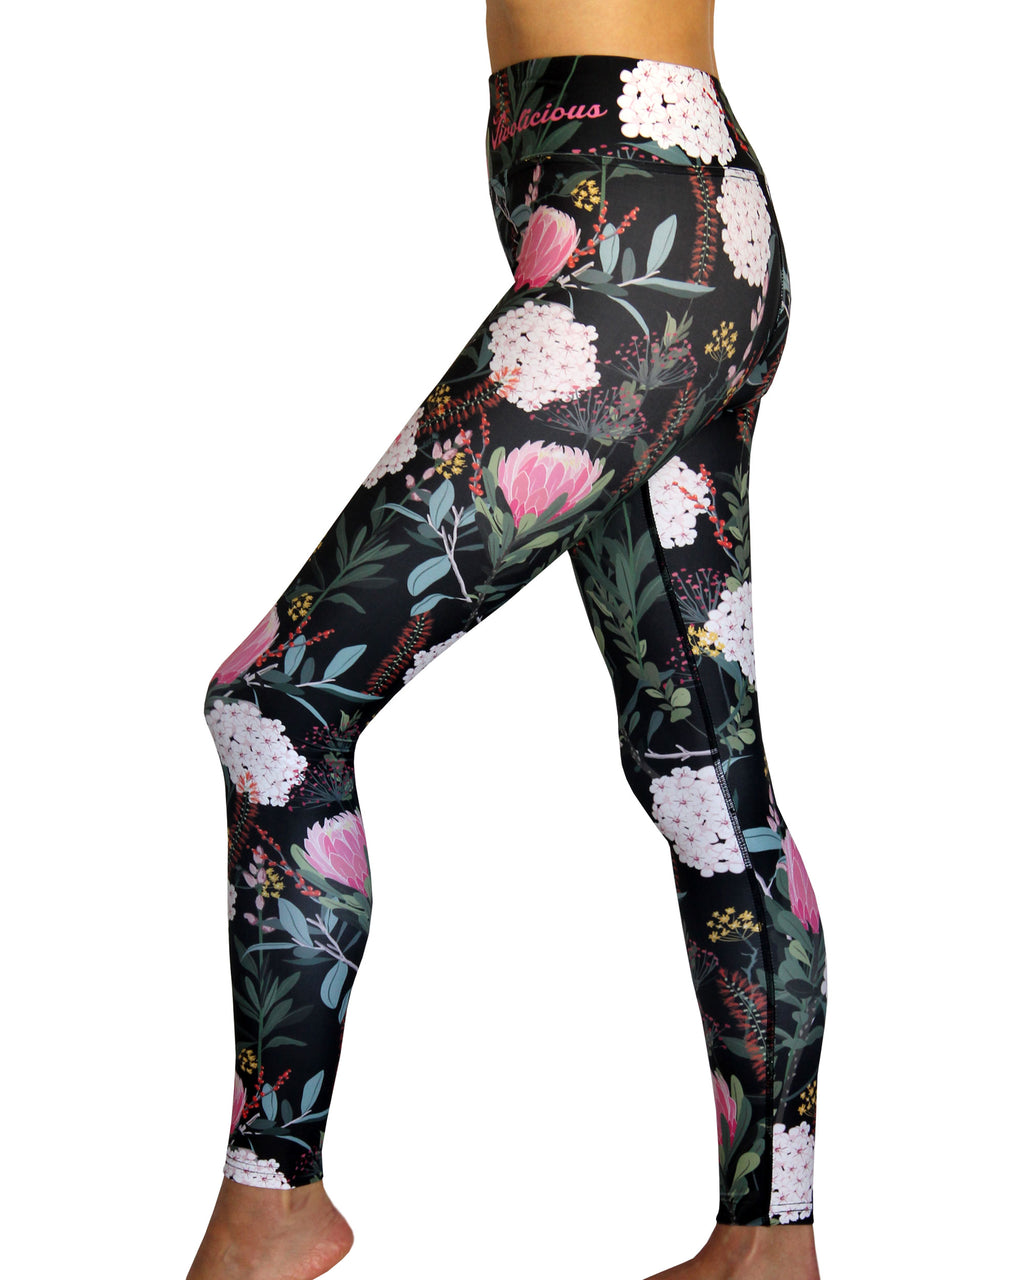 Vivolicious SUGARBUSH Women's Tech Tights